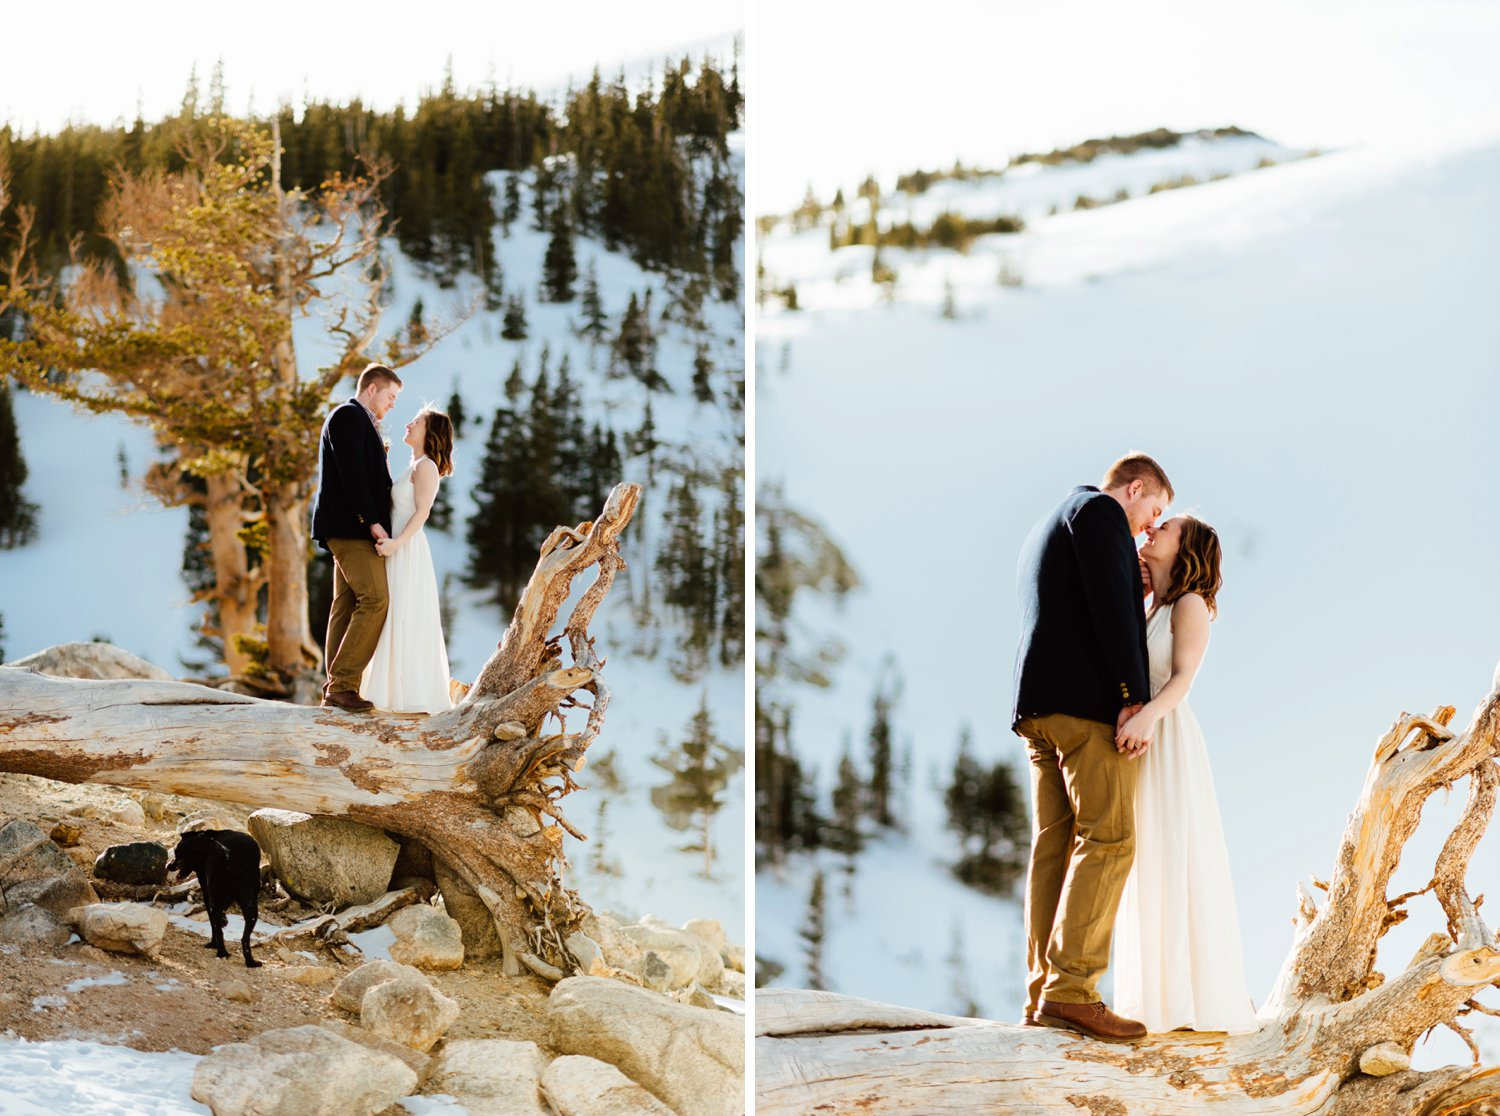 I totally want to bring my dog along on my hiking, mountain elopement! I love how the photographer captured such intimate, romantic moments between Kelsie and Tyler!|Mountain wedding photos by intimate elopement photographer, Maddie Mae.